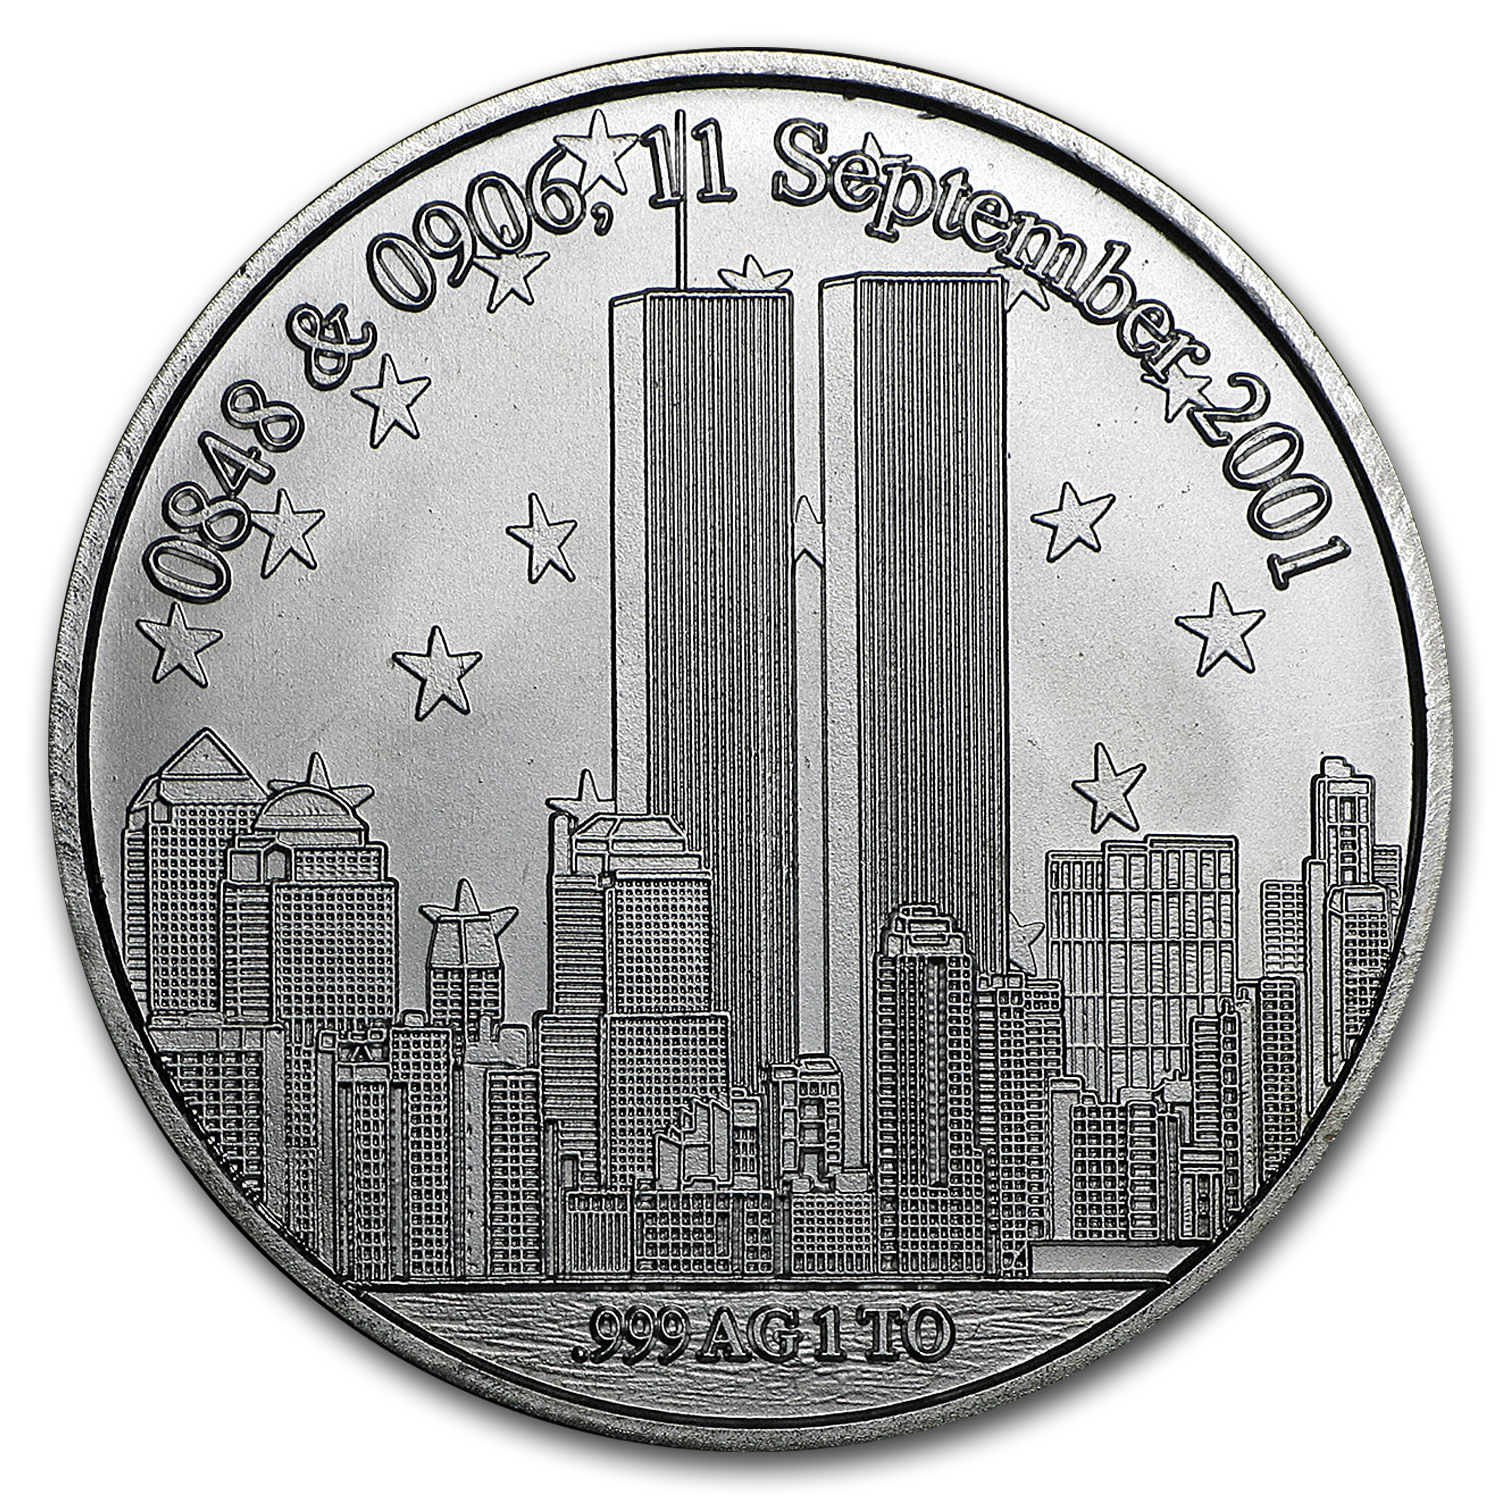 1 oz Silver Rounds - We Will Never Forget